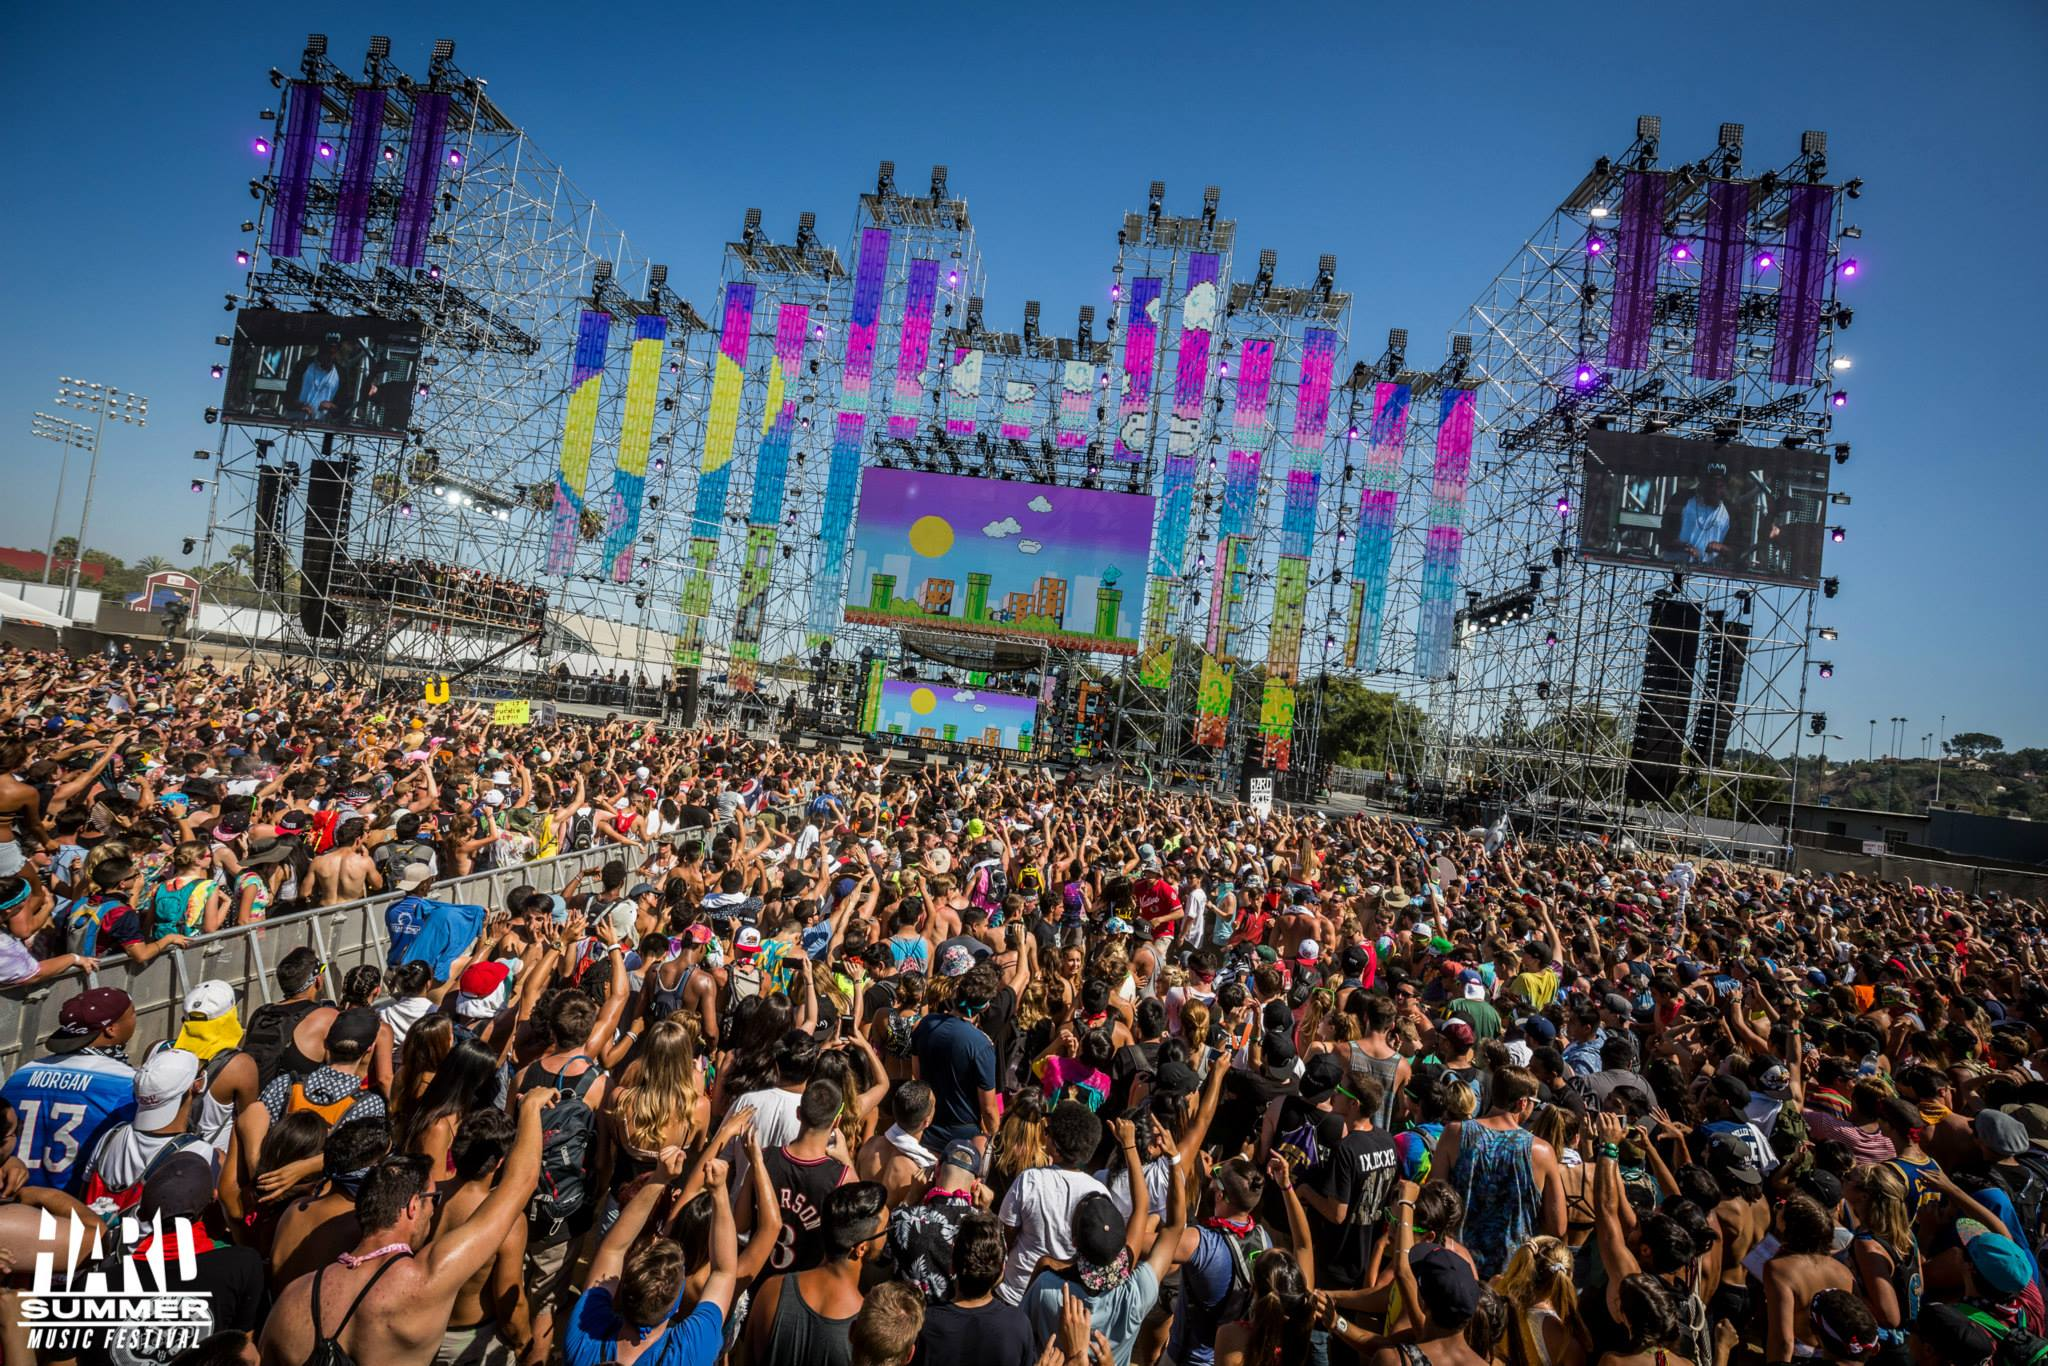 HARD Summer 2016 Reveals Impressive Lineup & New Location Featuring Camping Options